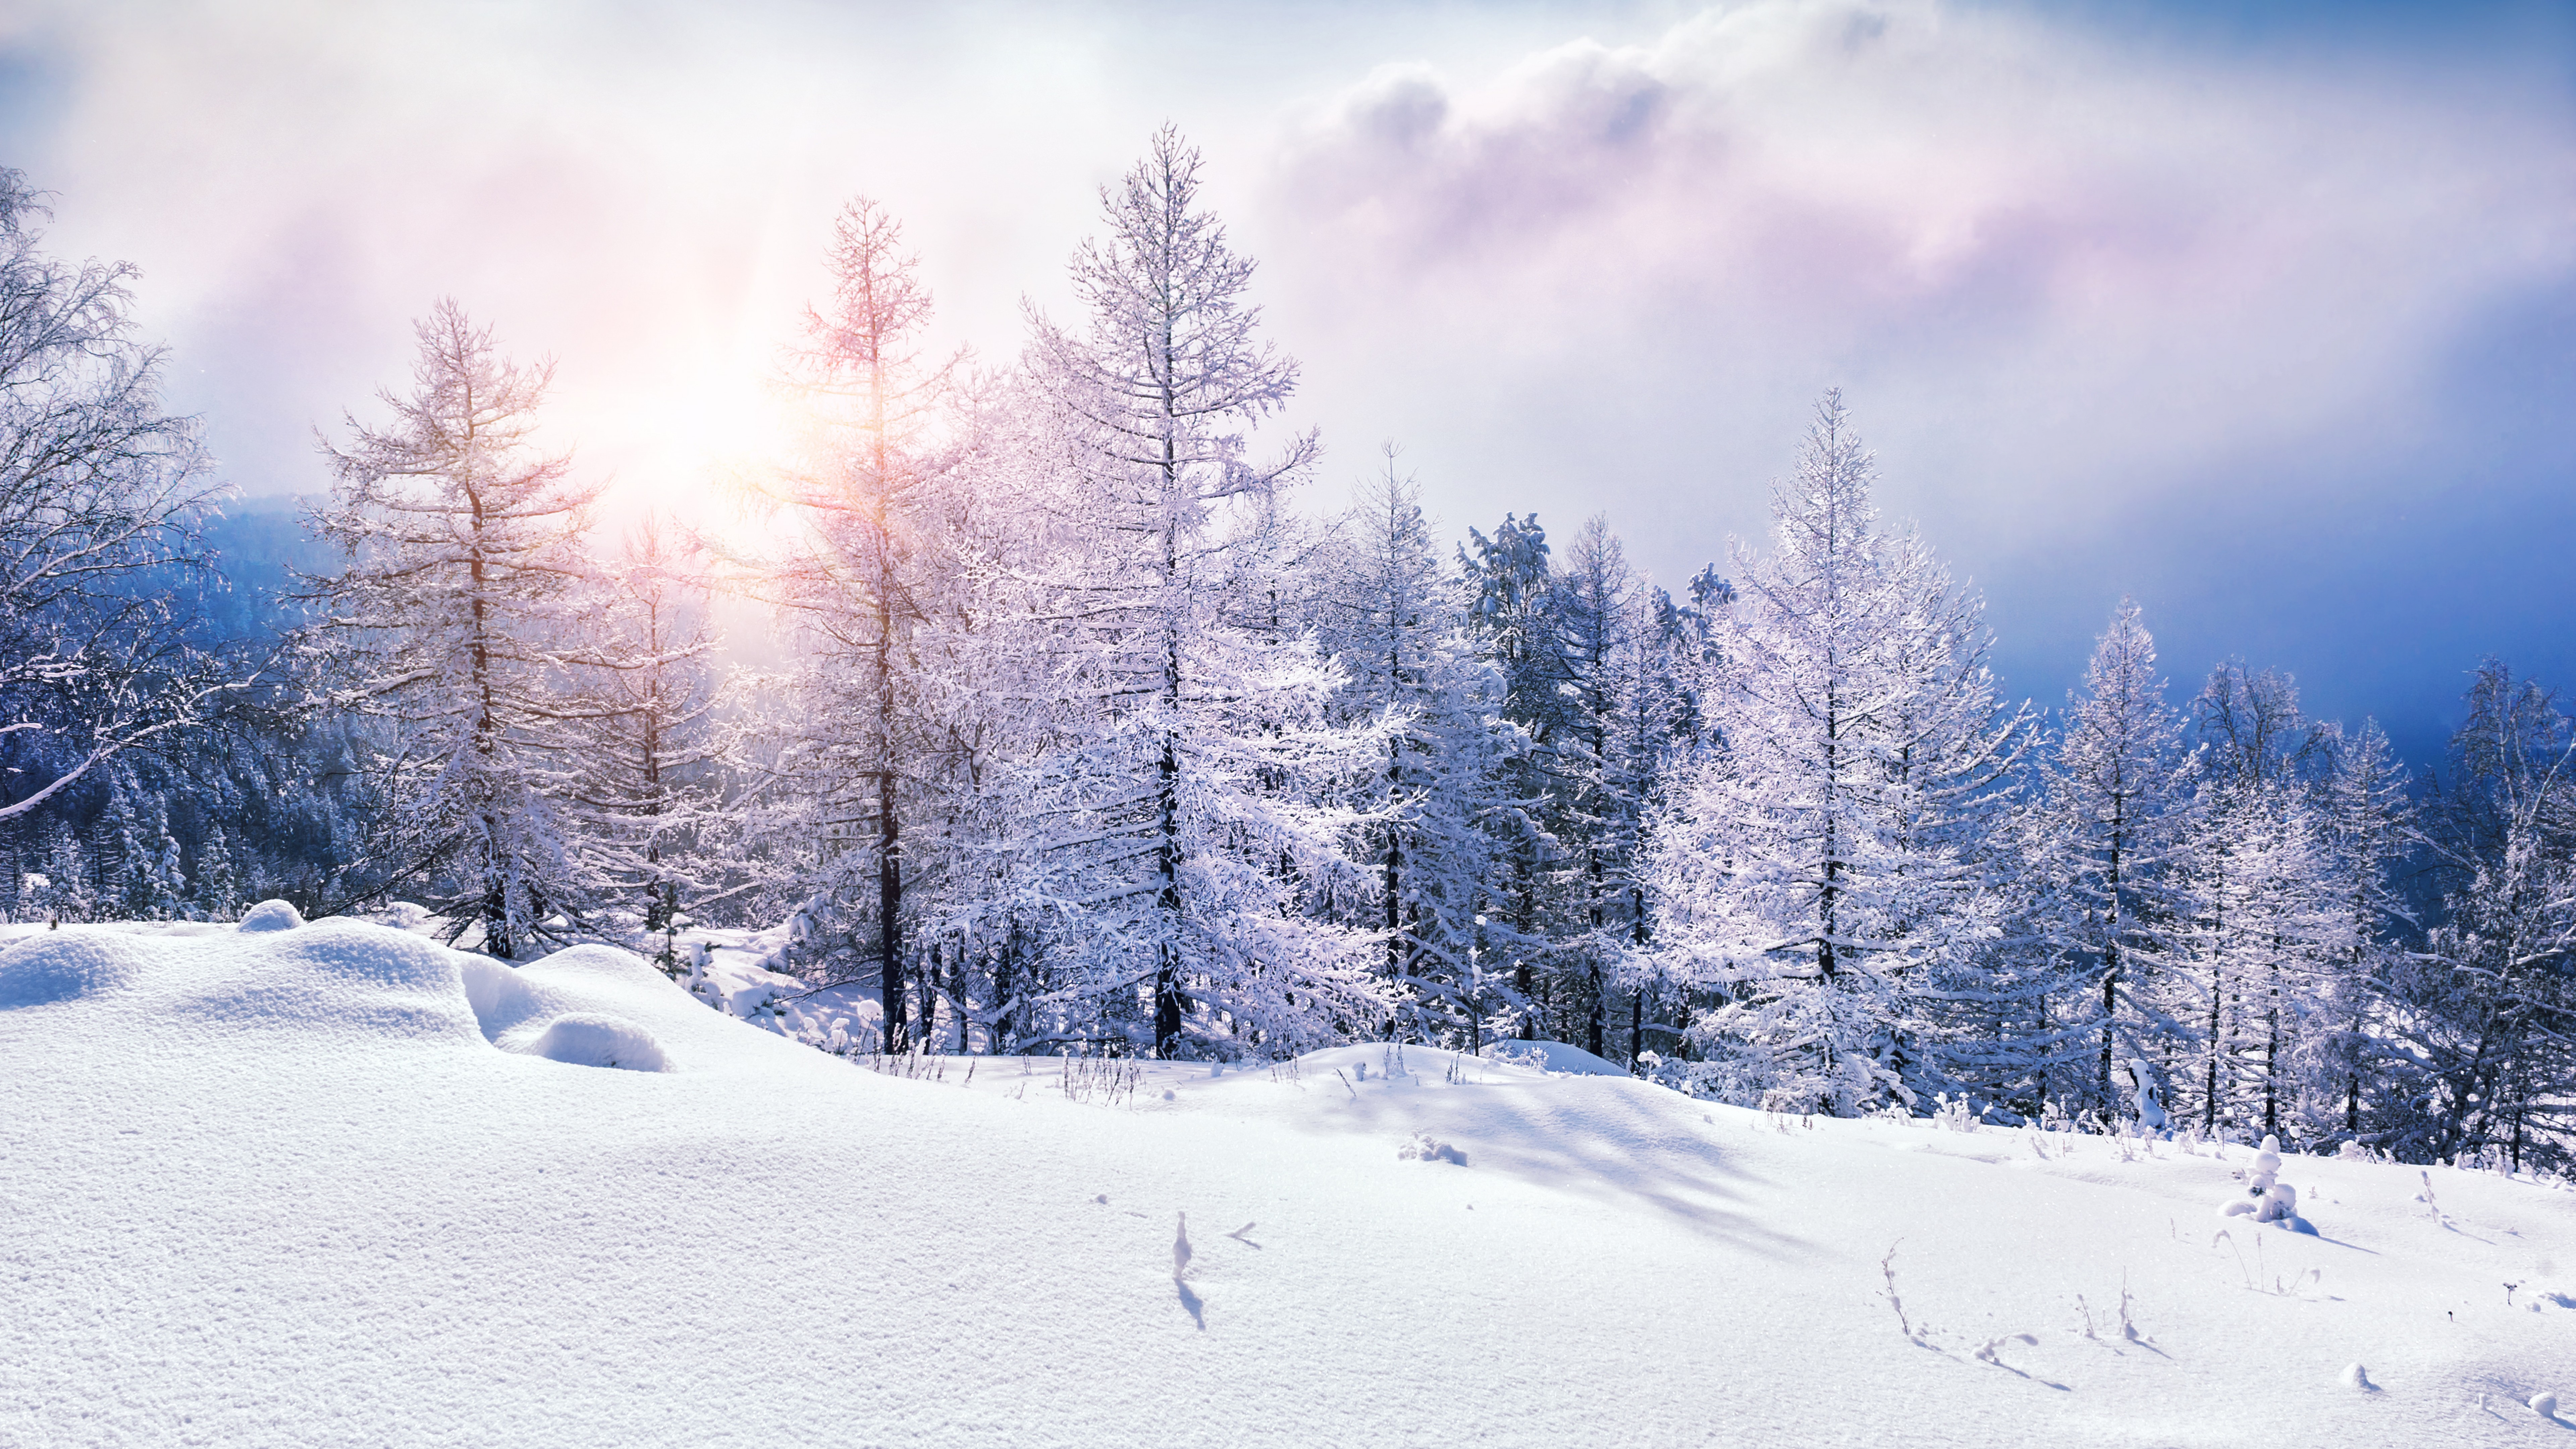 Pine Trees In Winter At Sunset Wallpaper 8k Ultra Hd Id4313